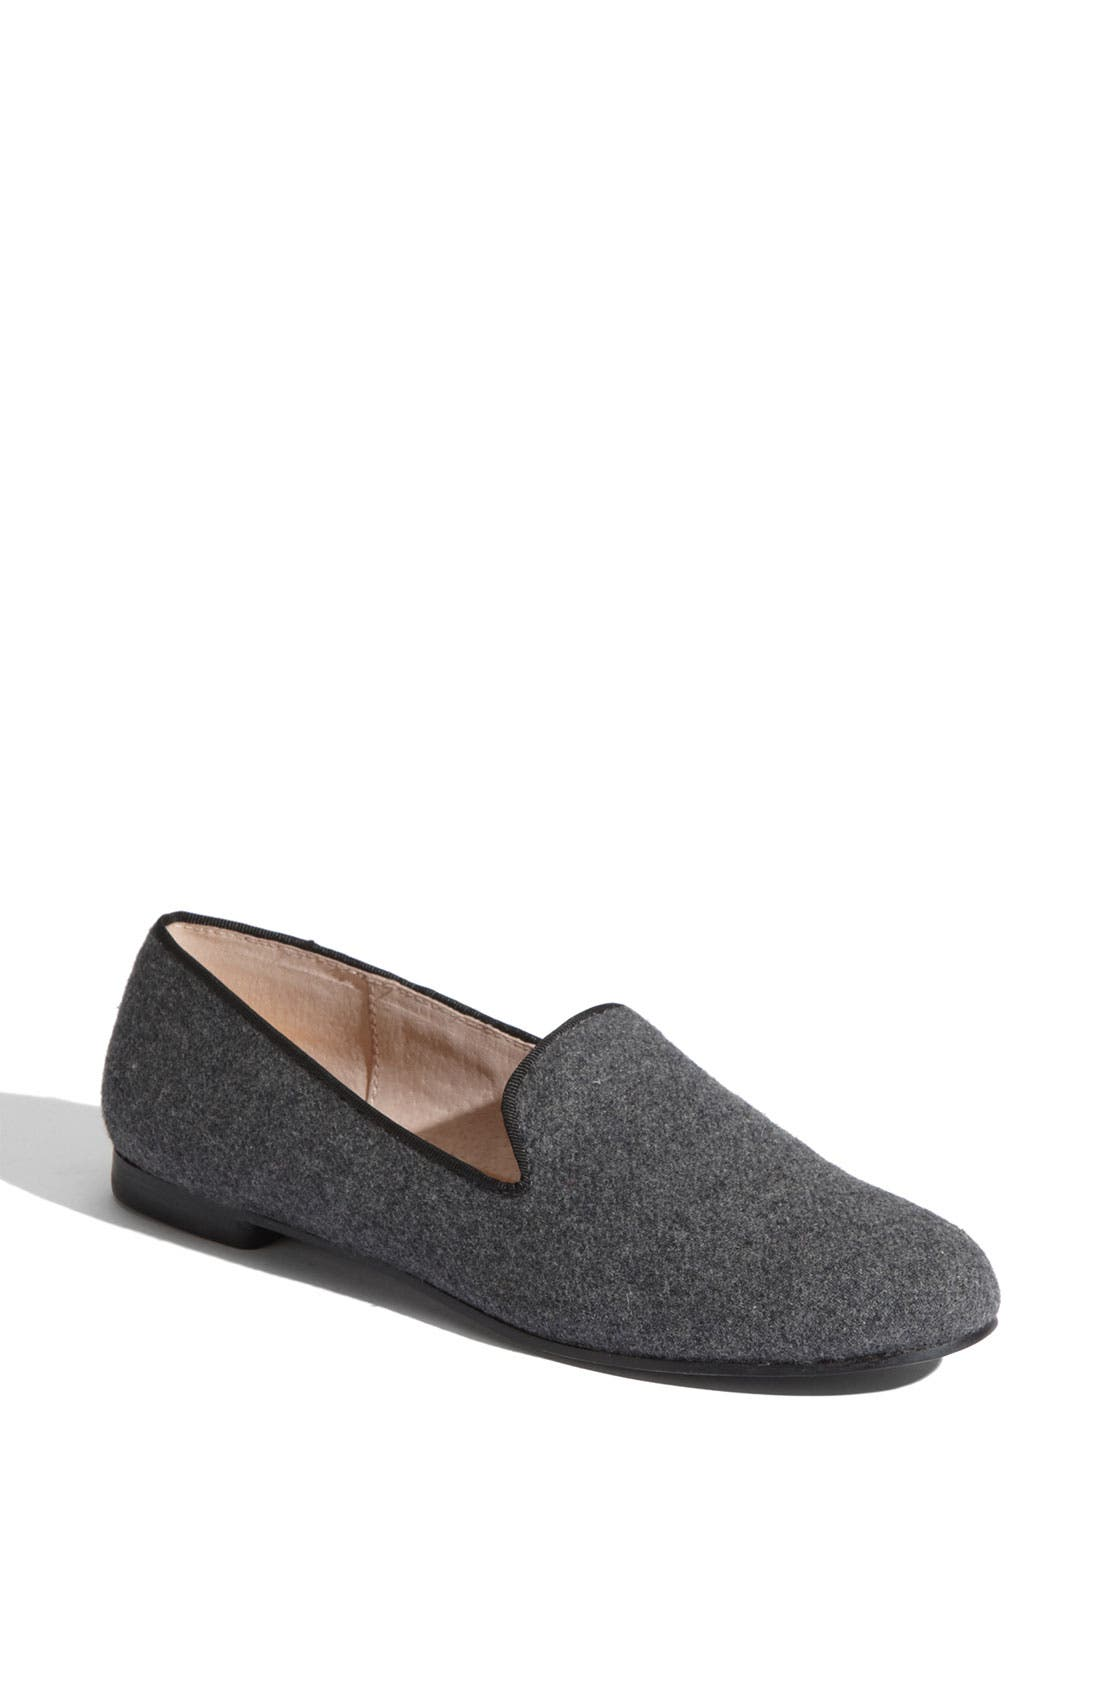 Alternate Image 1 Selected - Steven by Steve Madden 'Madee' Slip-On